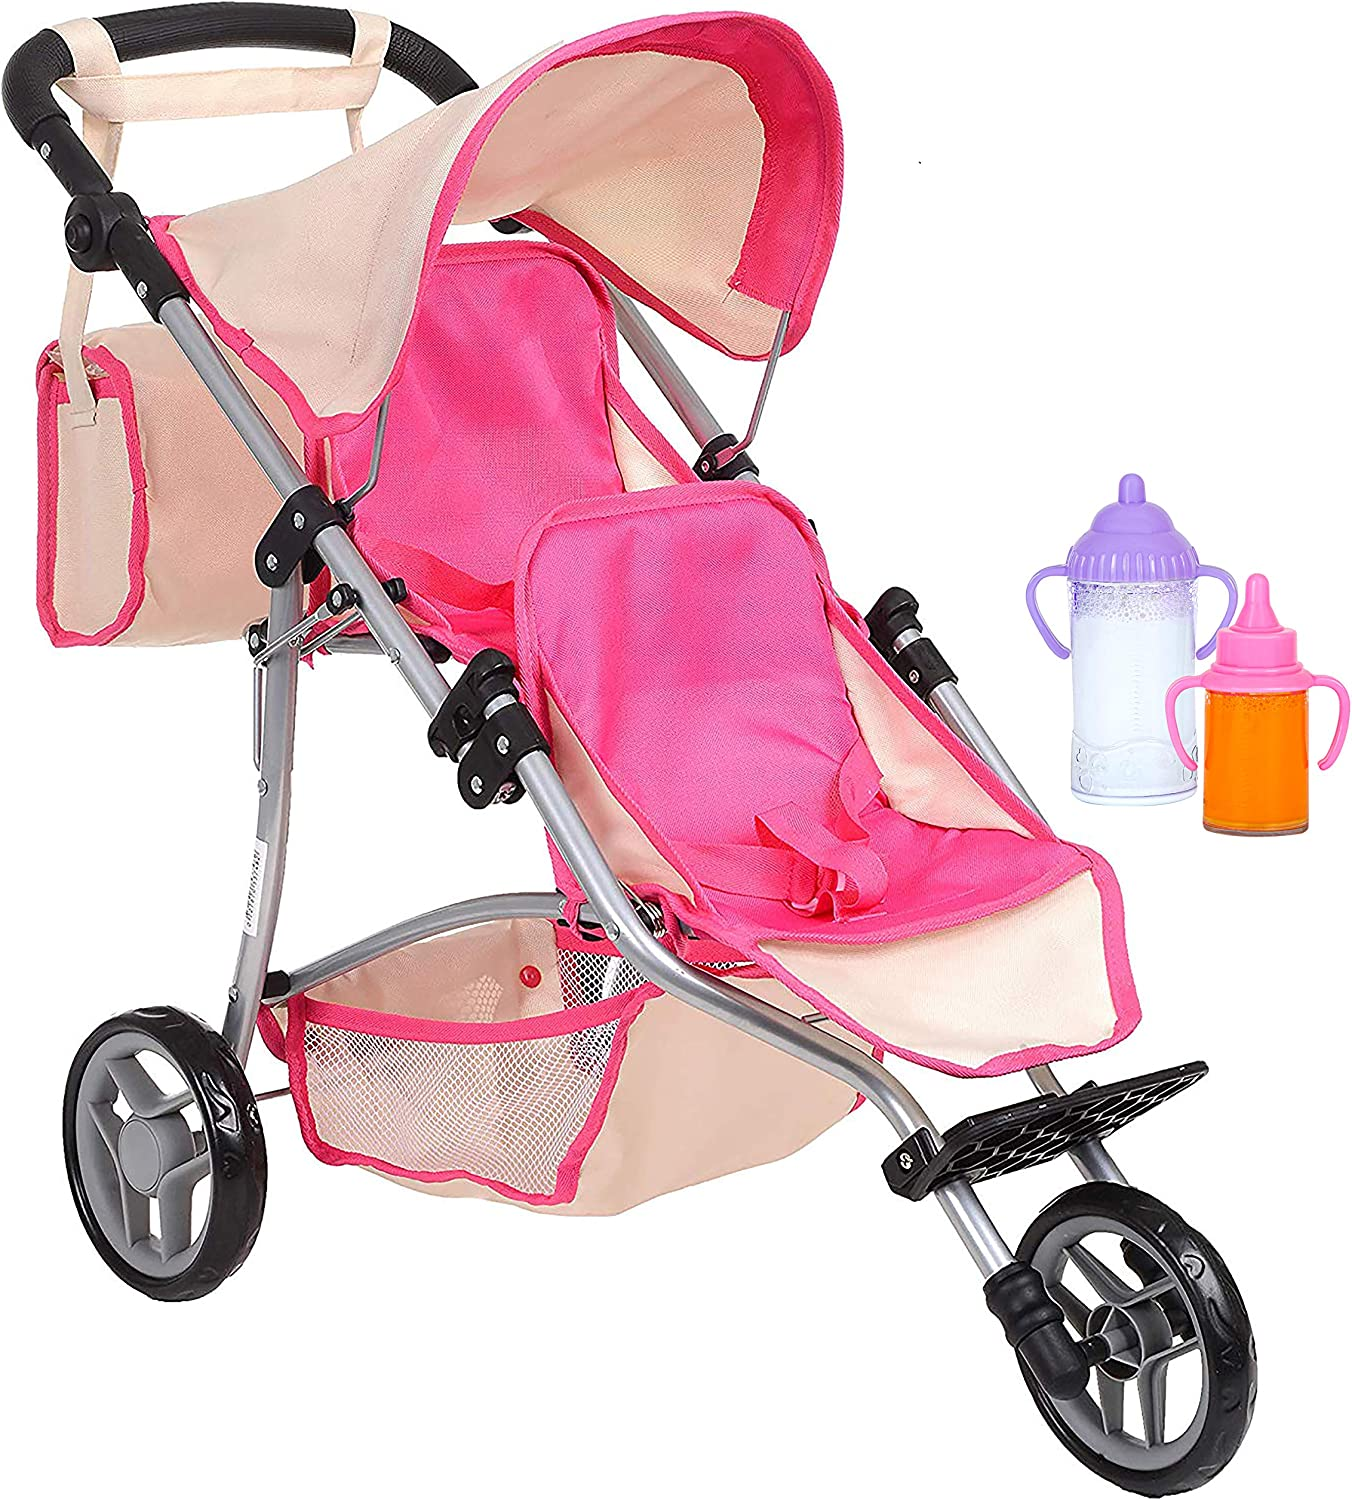 Exquisite Buggy Twin Doll Stroller with Diaper Bag and Hot Pink/Off White Design with 2 Free Magic Bottles